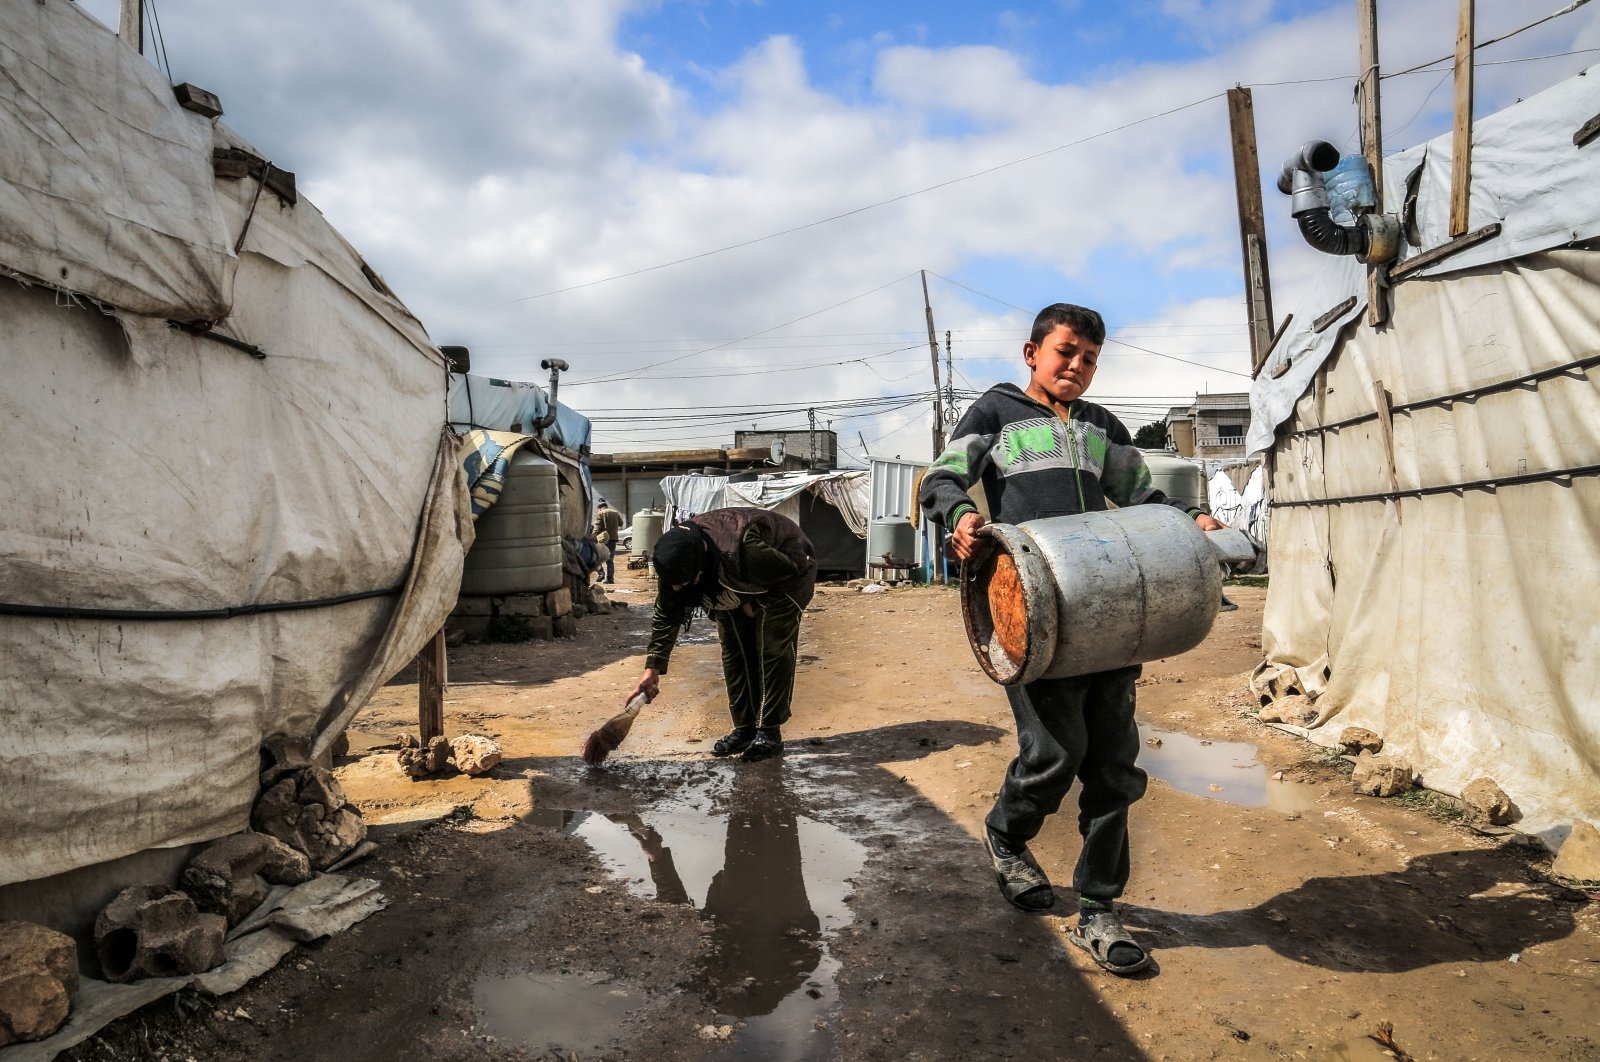 A Syrian refugee clears rainwater outside her tent following heavy rain, at Marj Syrian refugee camp in Lebanon's Bekaa valley, Feb. 20, 2021 (Getty Images)